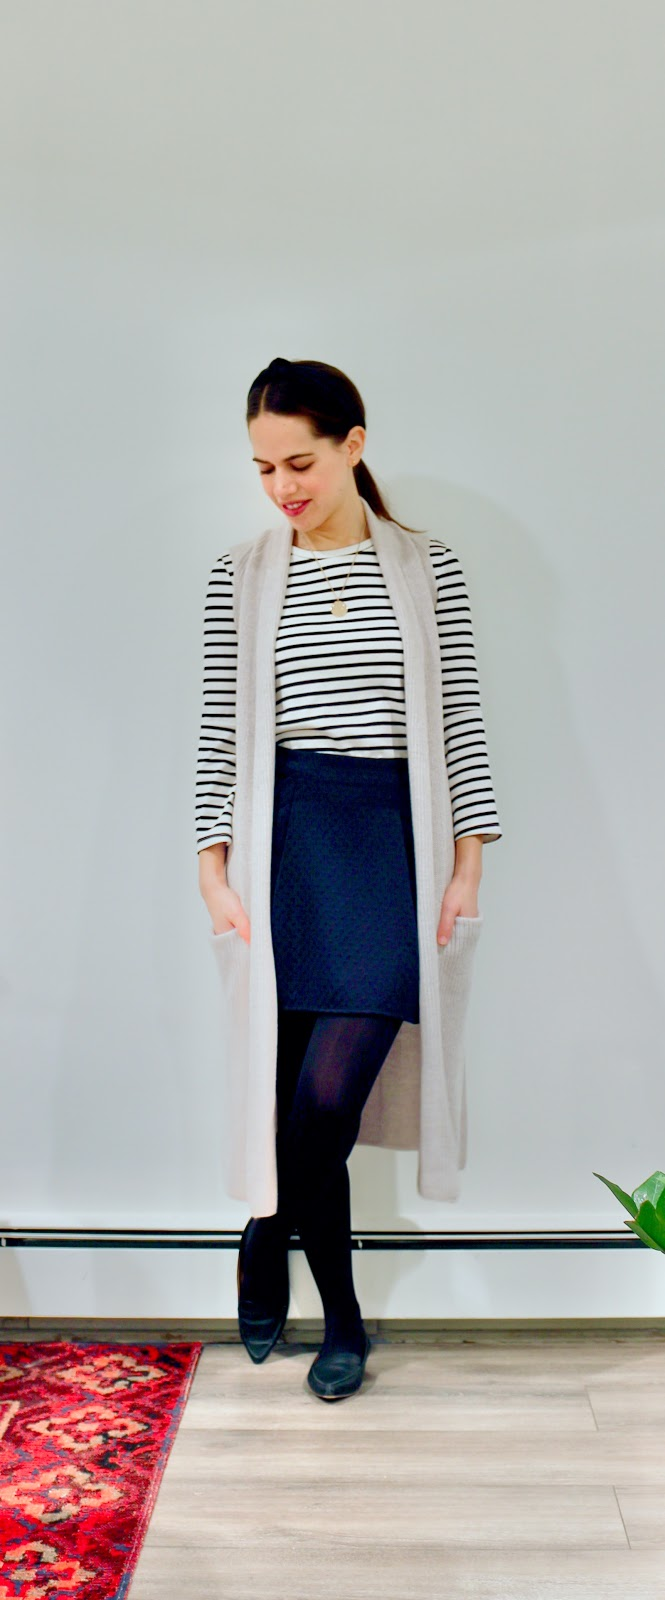 Jules in Flats - Striped Top with Mini Skirt & Duster Cardigan (Business Casual Winter Workwear on a Budget)